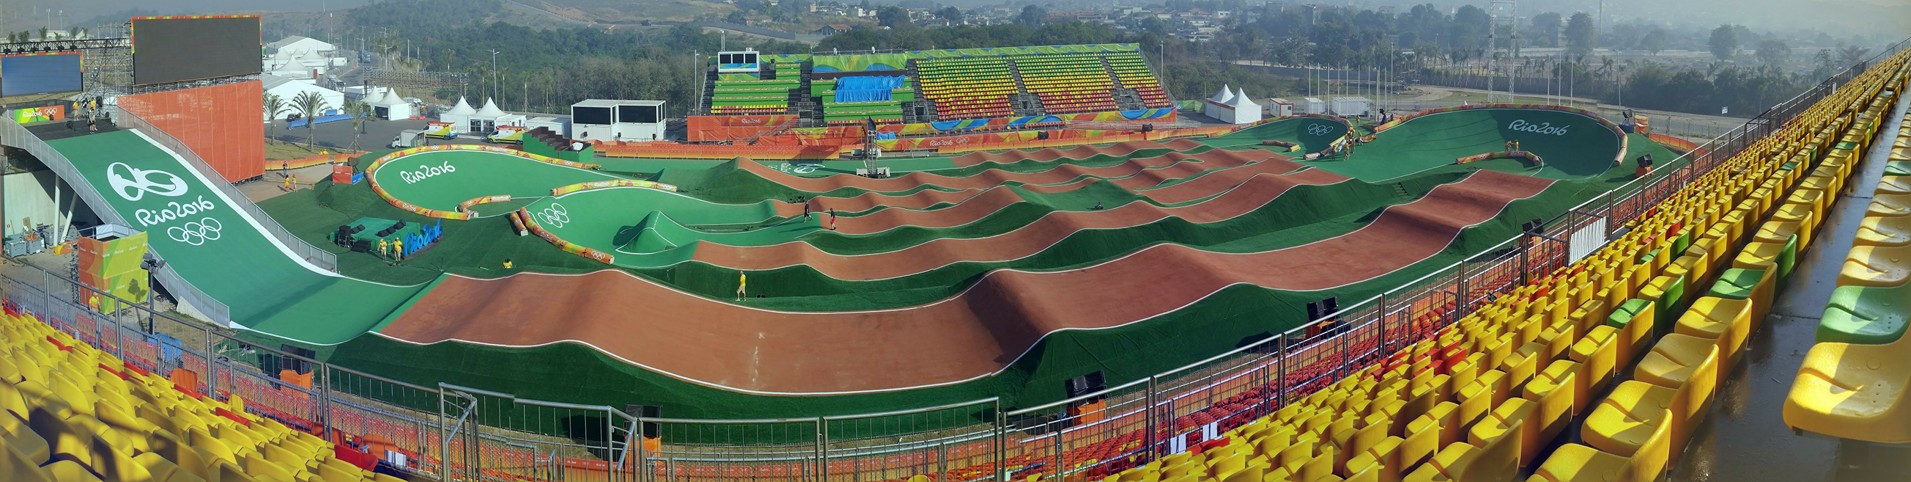 Rio Olympic Track